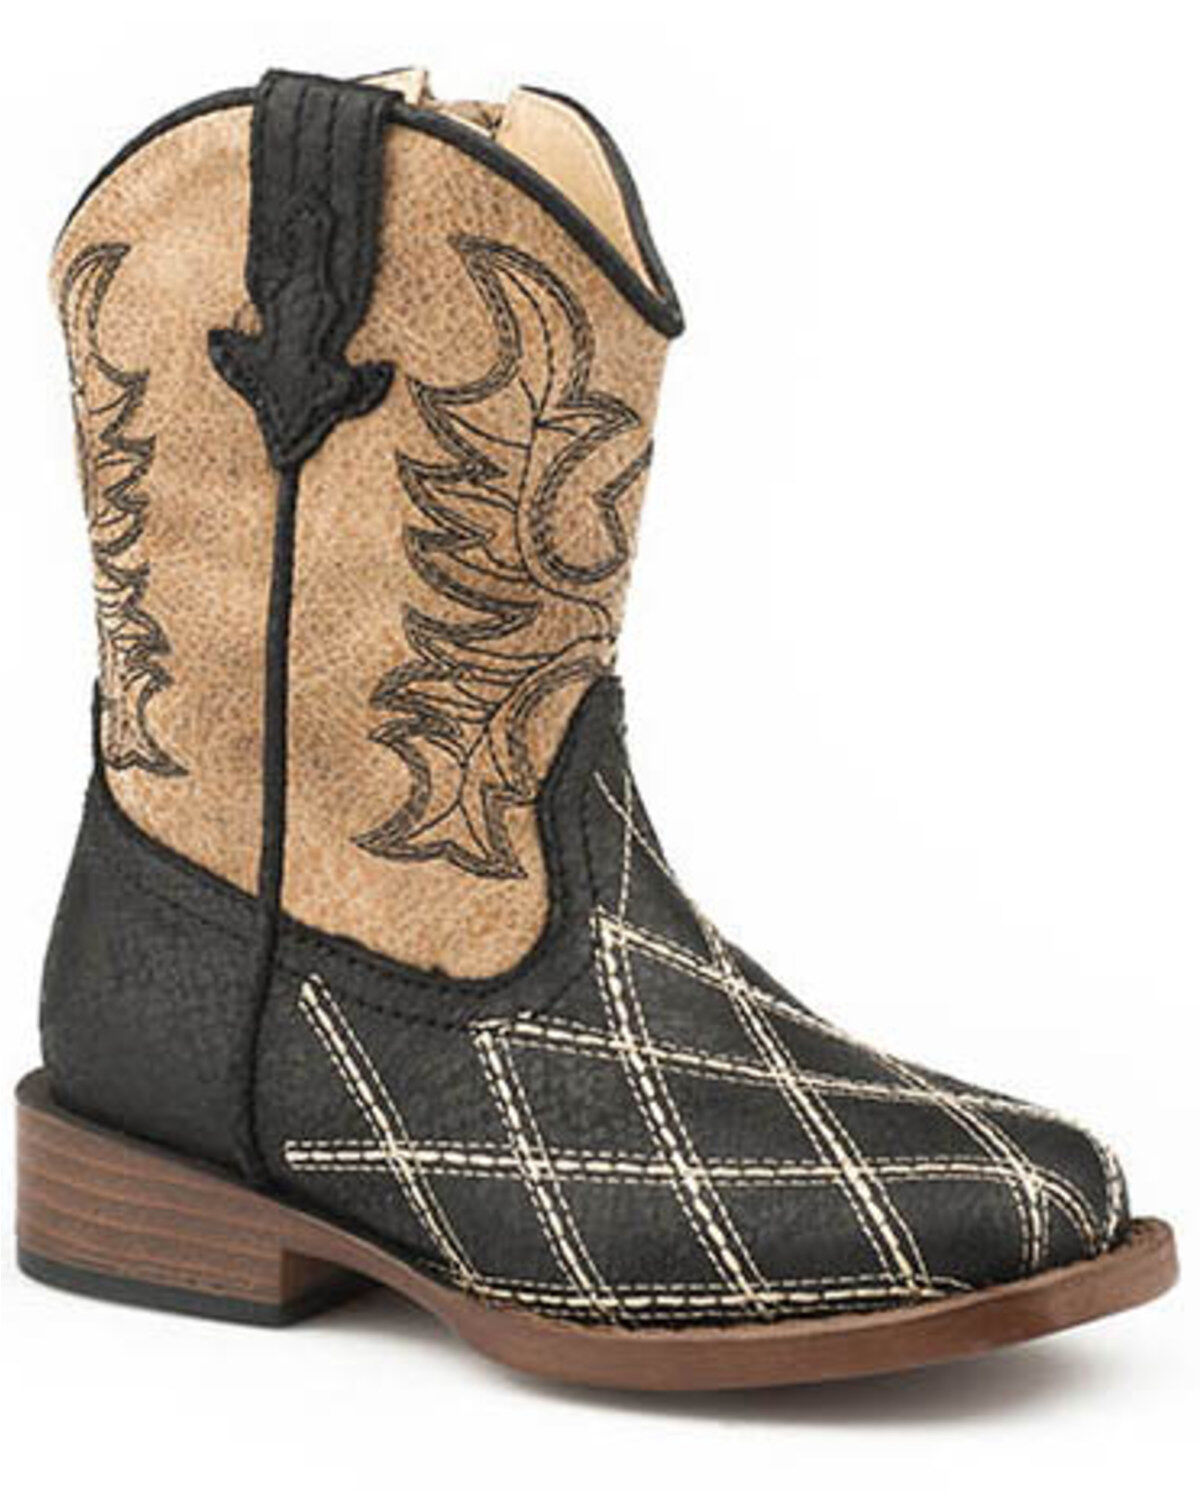 Toddler Girls BLACK COWBOY BOOTS Mock Leather ROUND TOE Western  2 3 4 5 6